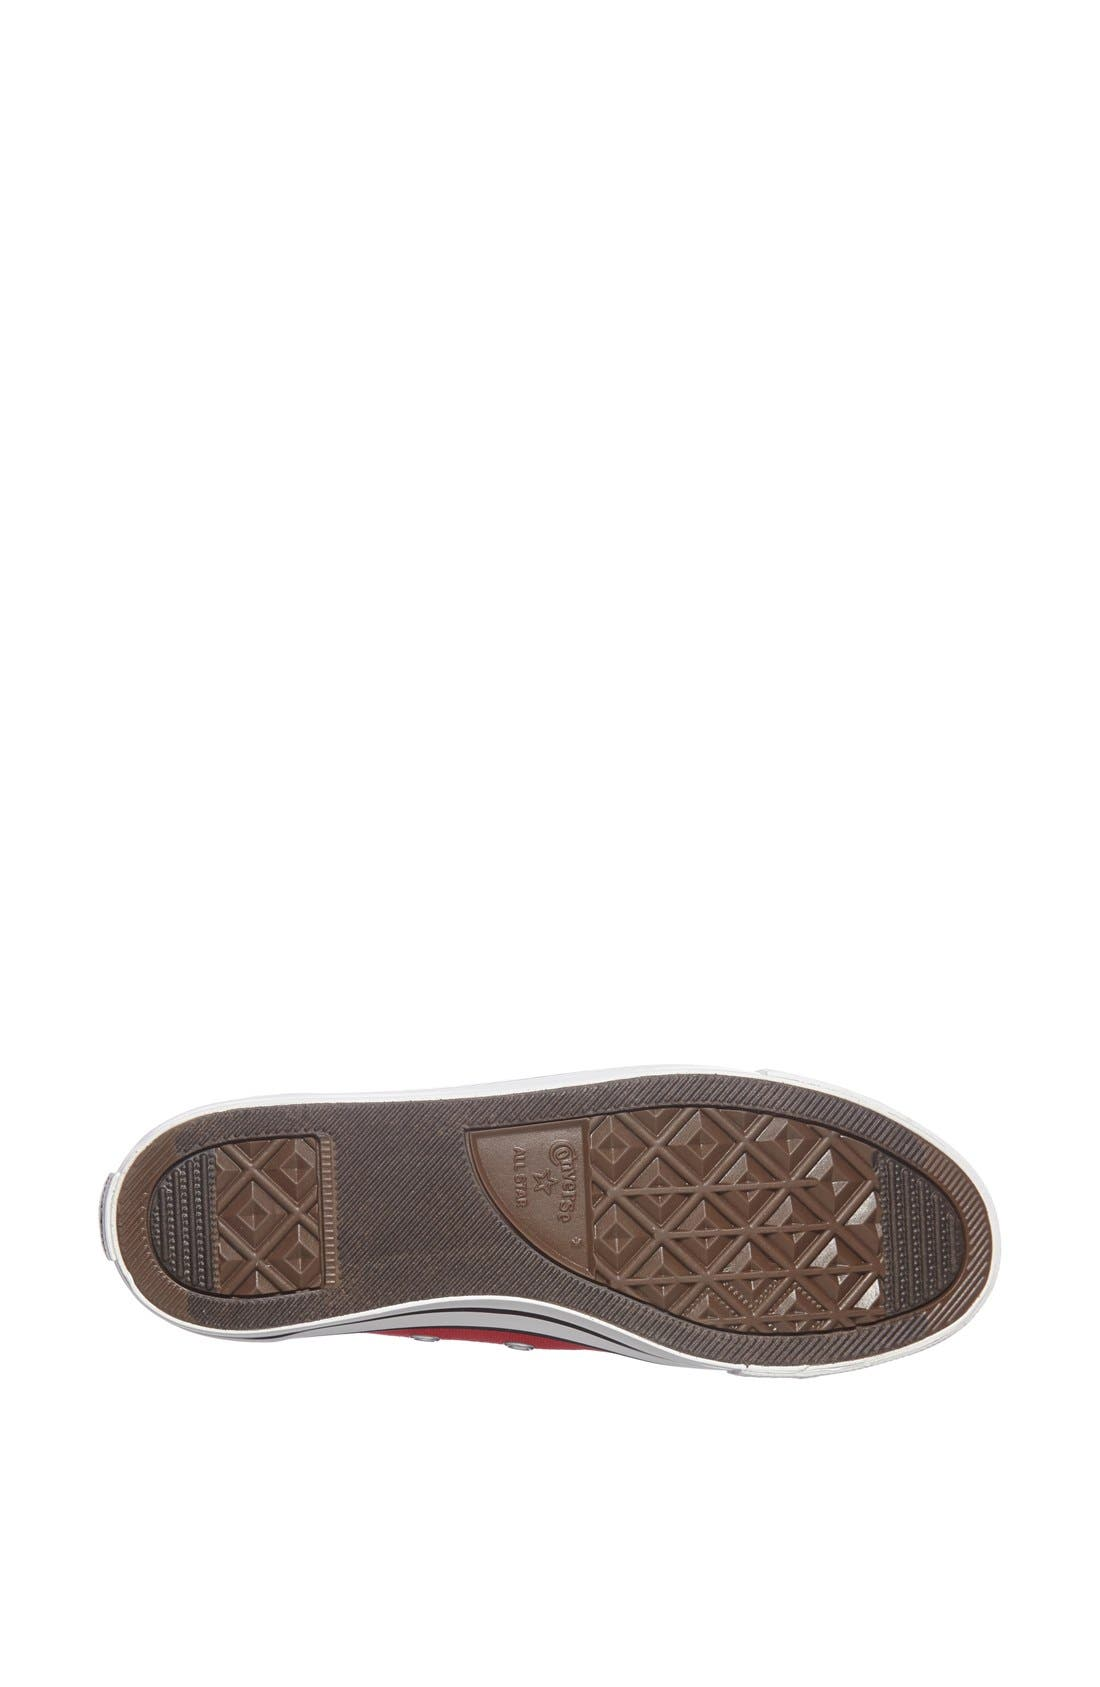 ,                             Chuck Taylor<sup>®</sup> 'Dainty' Sneaker,                             Alternate thumbnail 30, color,                             600